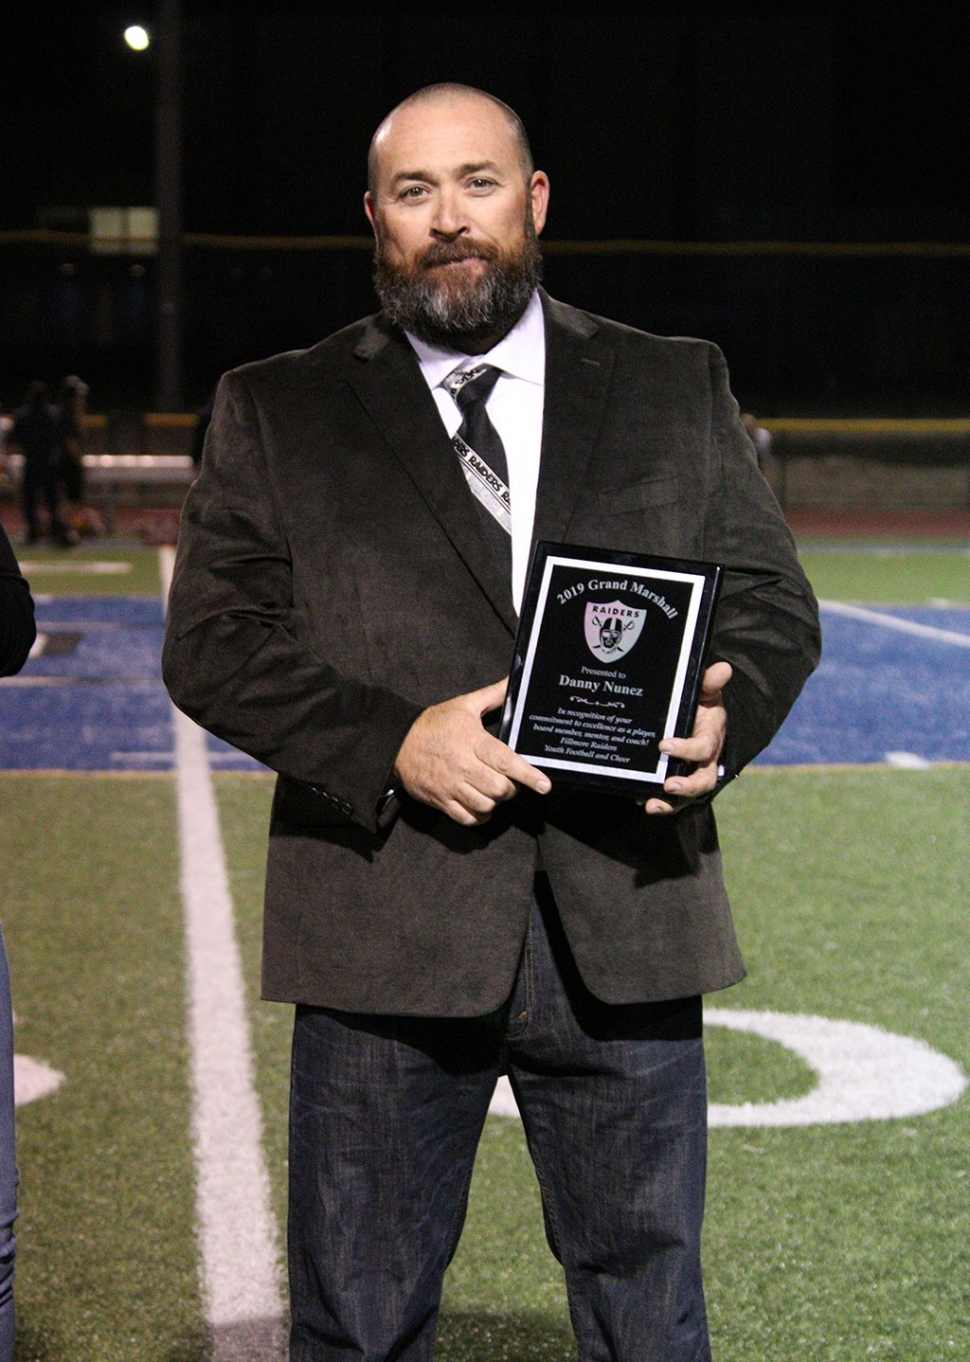 Danny Nunez, Raiders Grand Marshal for 50th year of commitment to Fillmore's youth.